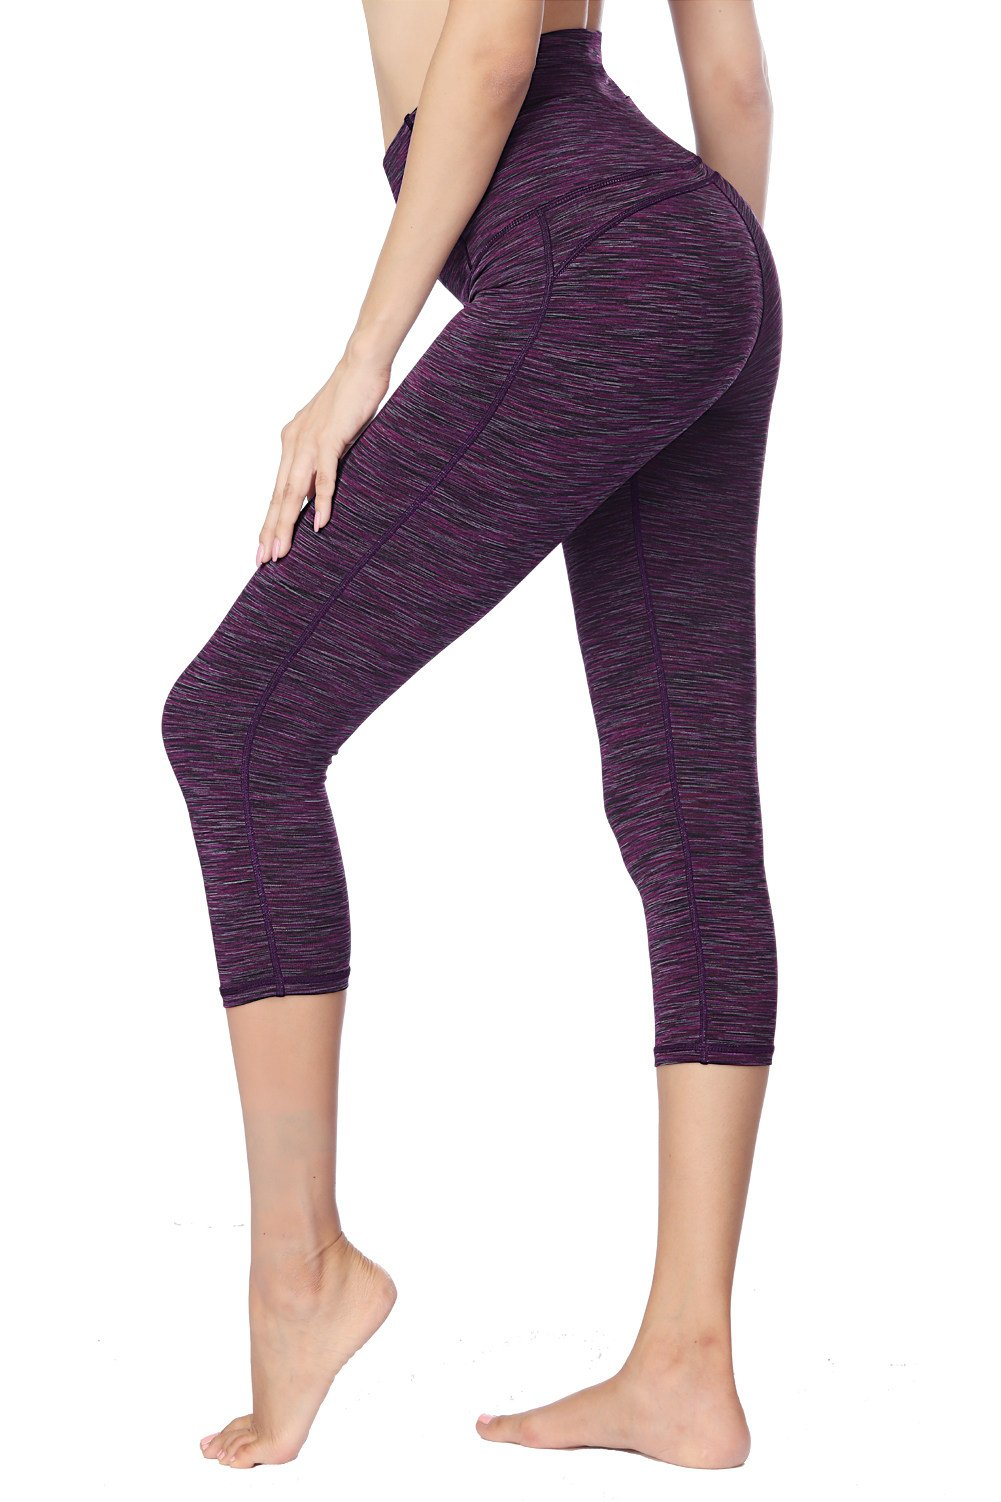 Dragon Fit Compression Yoga Pants Power Stretch Workout Leggings with High Waist Tummy Control (Medium, Capri-Purple)